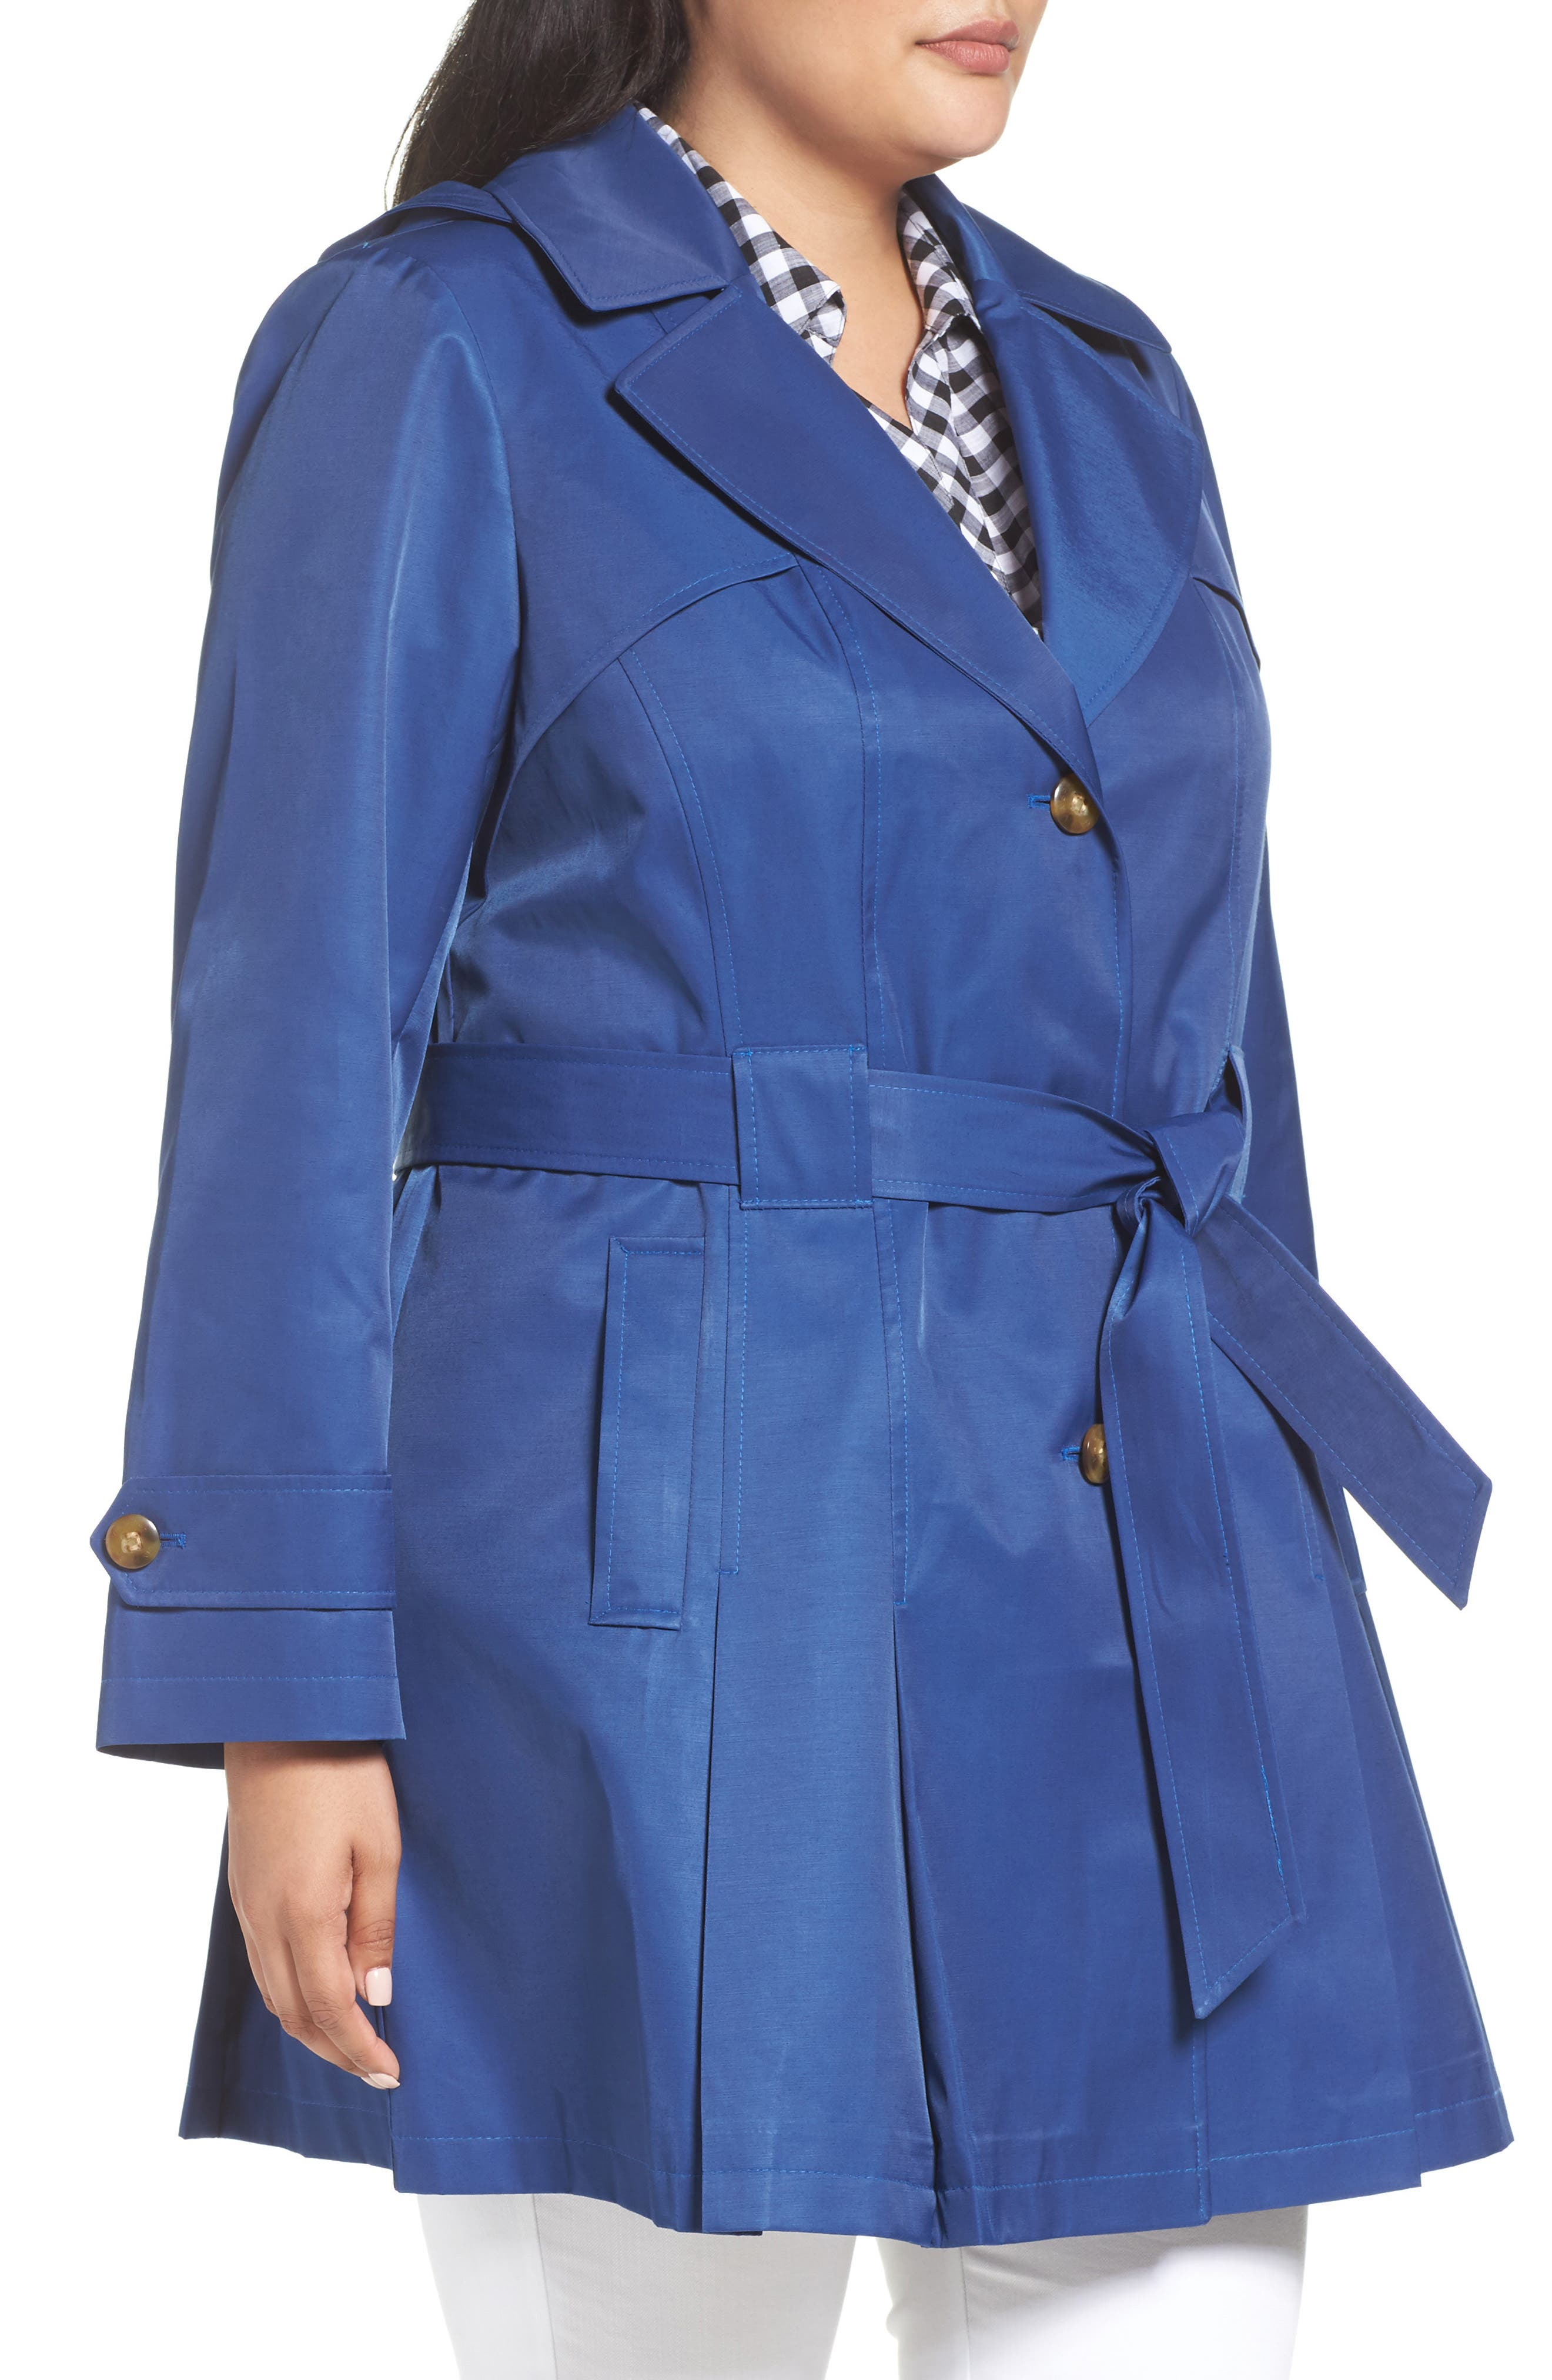 'Scarpa' Single Breasted Trench Coat,                             Alternate thumbnail 16, color,